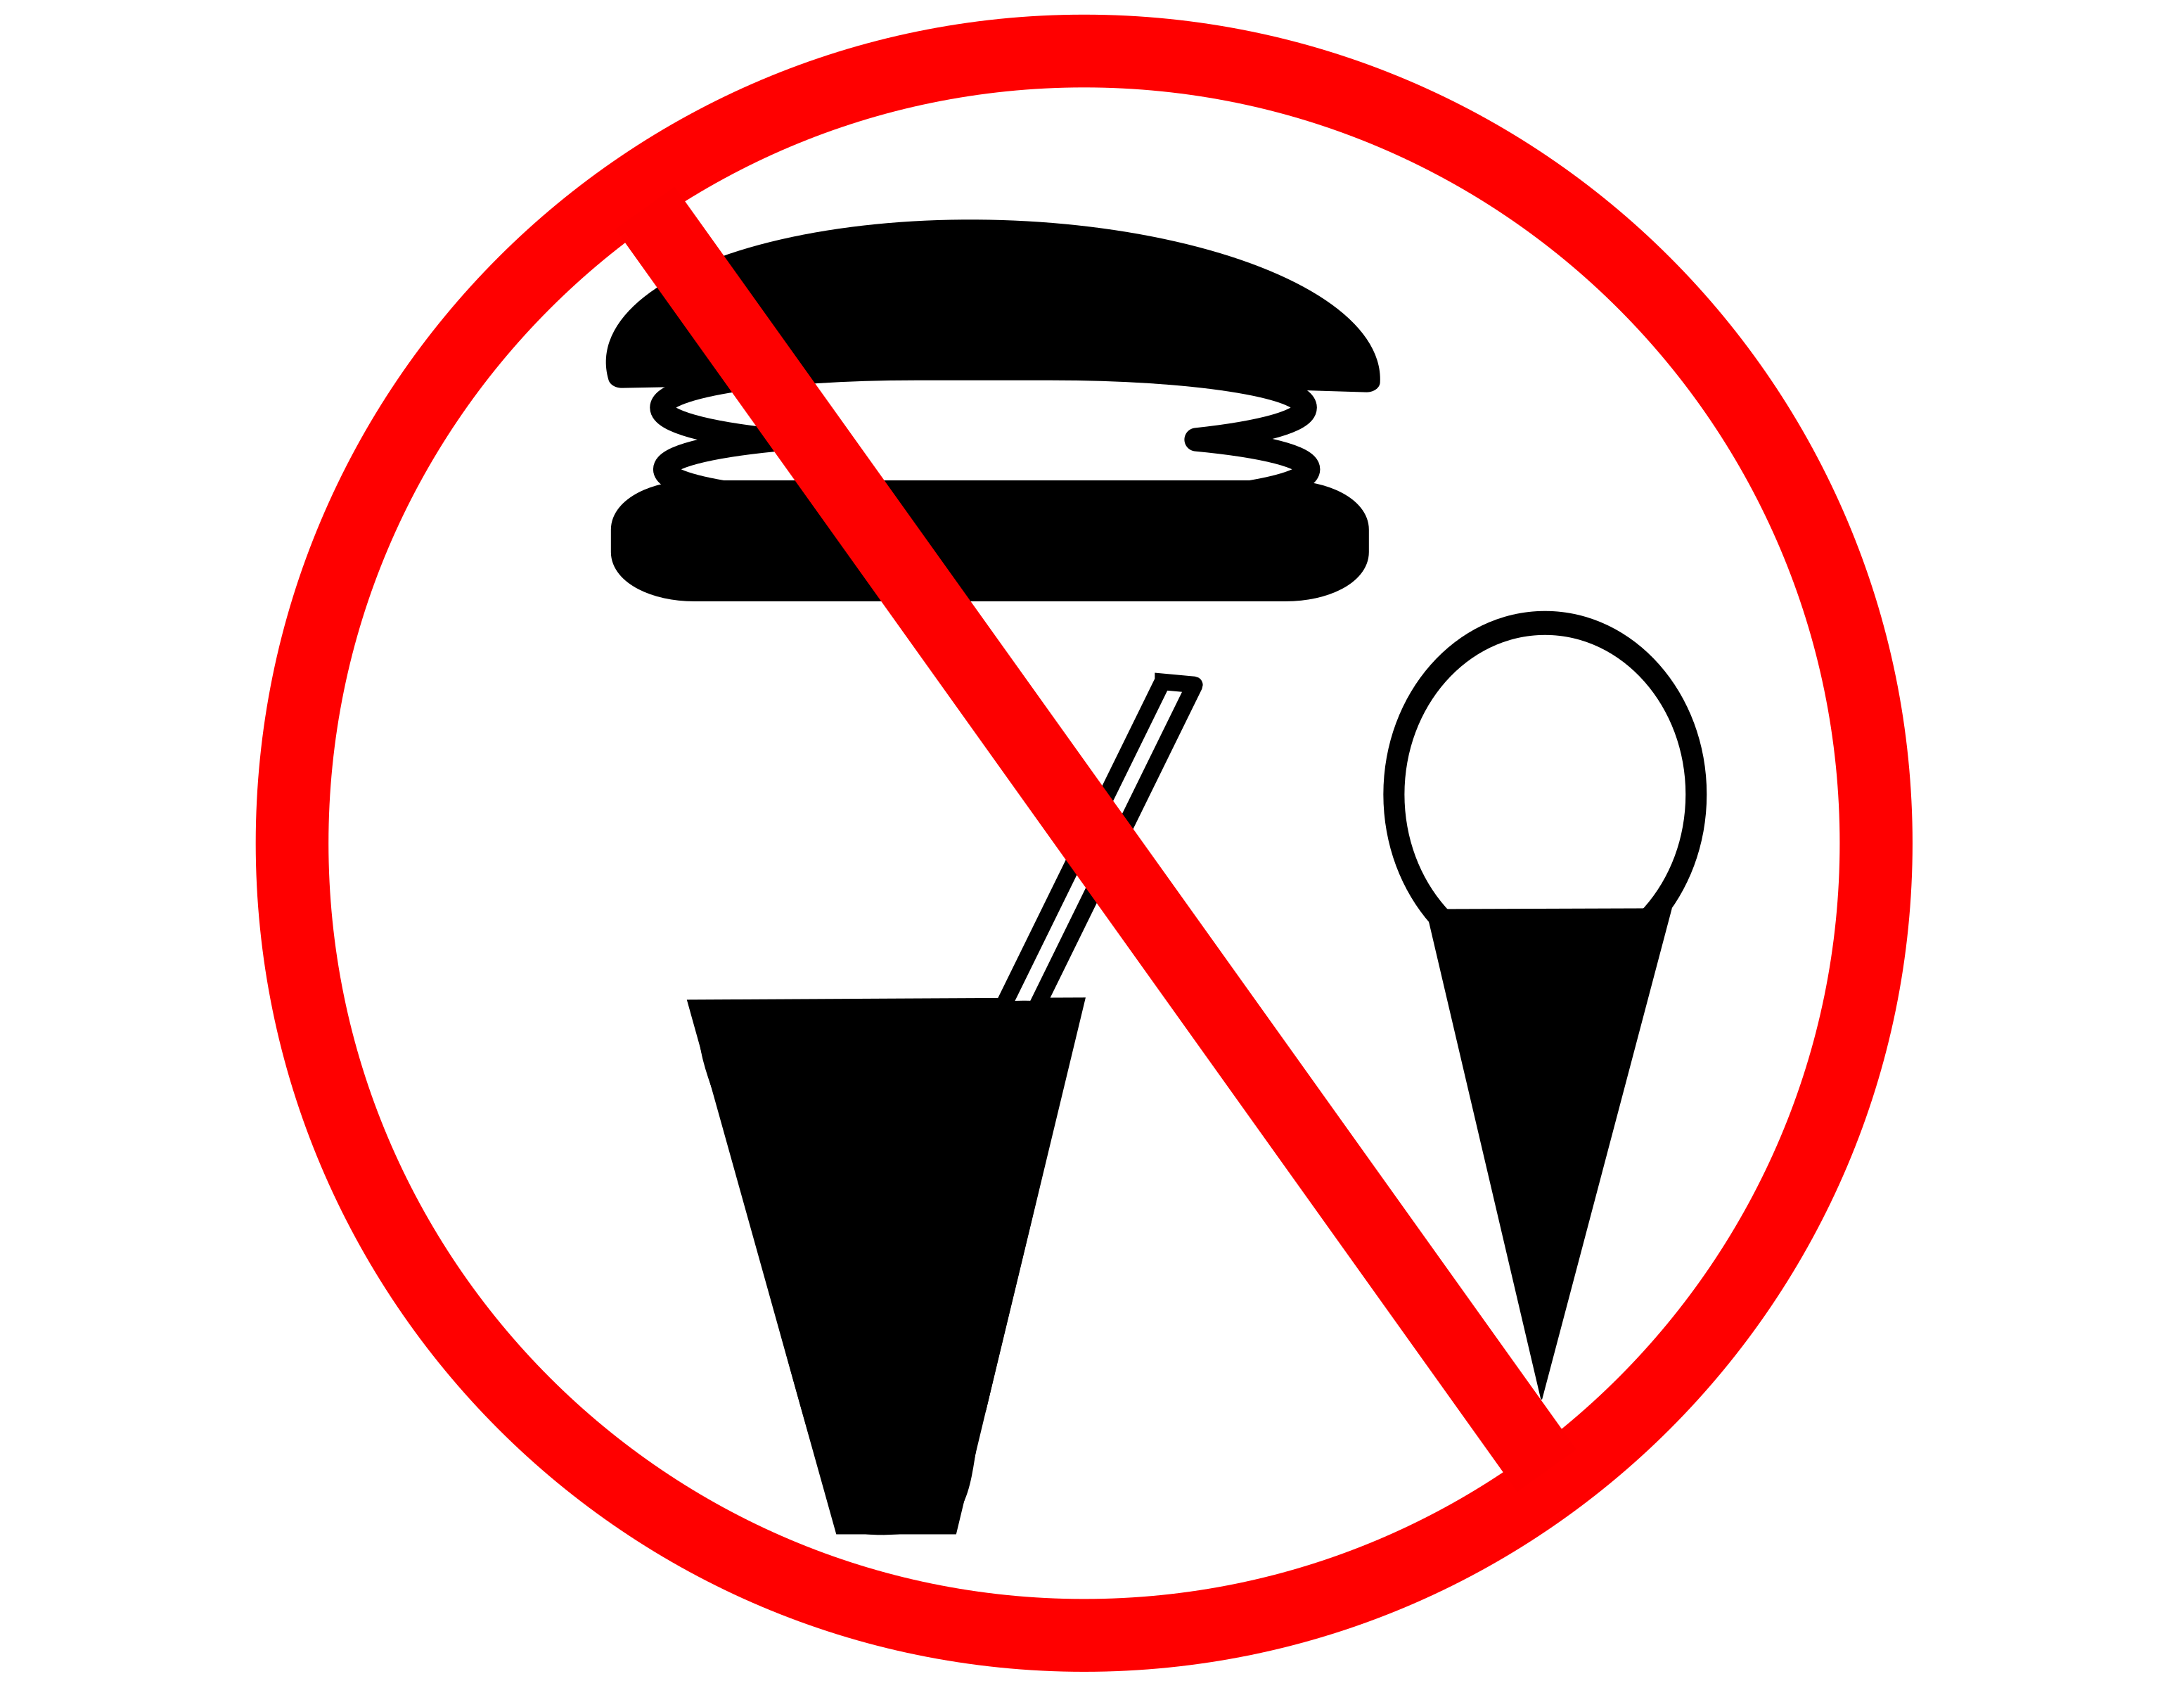 No food png. Allowed icons free and